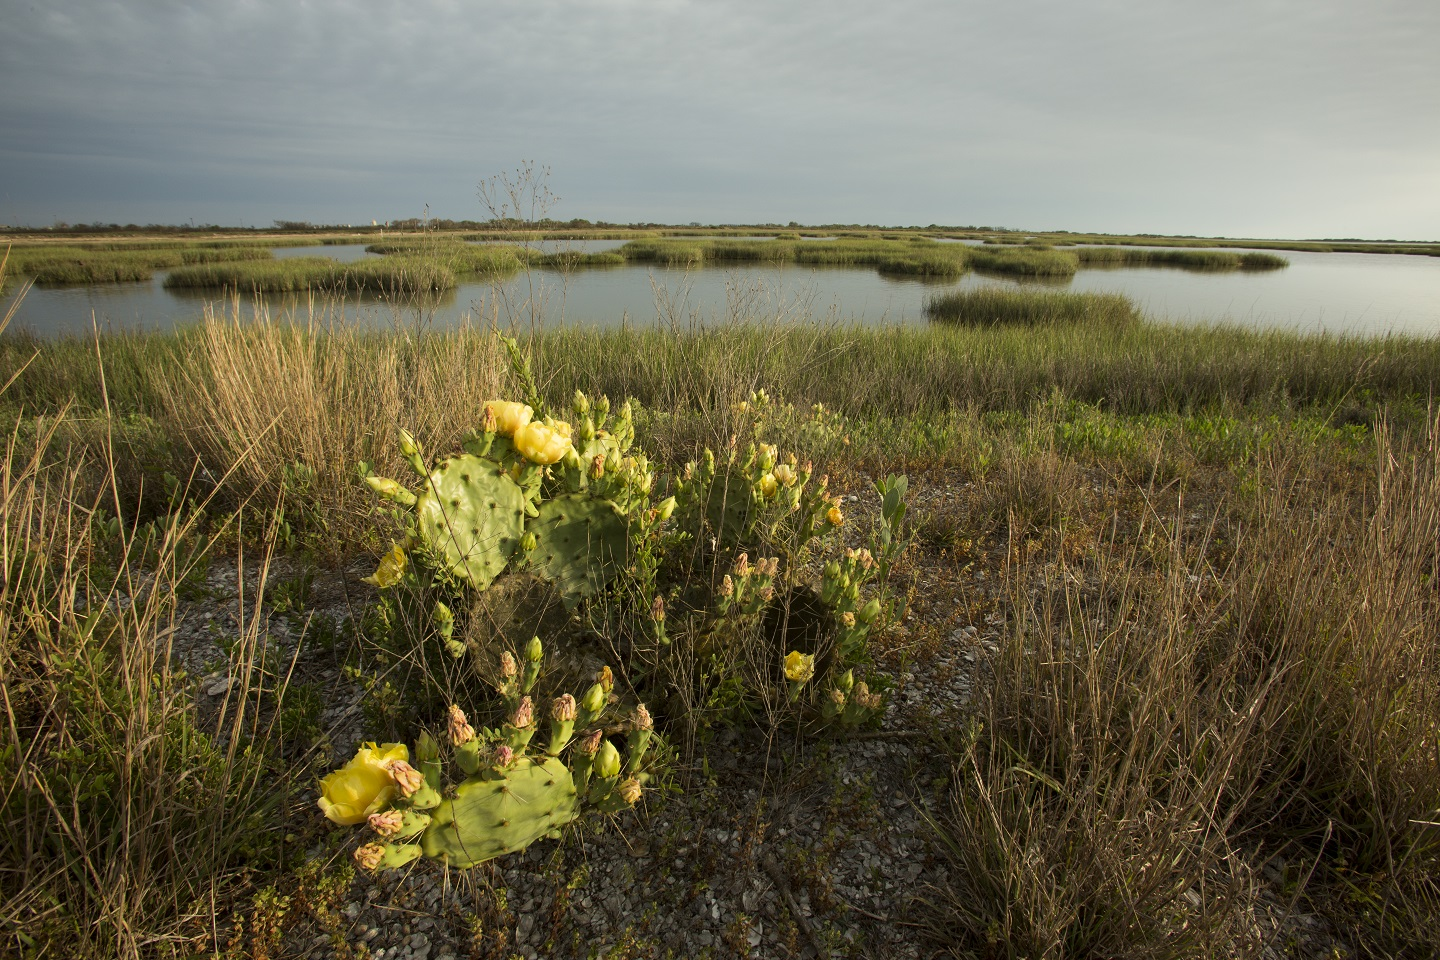 Cactus and wetlands along Powderhorn Lake. Photo courtesy of the nature Conservancy, Jerod Foster